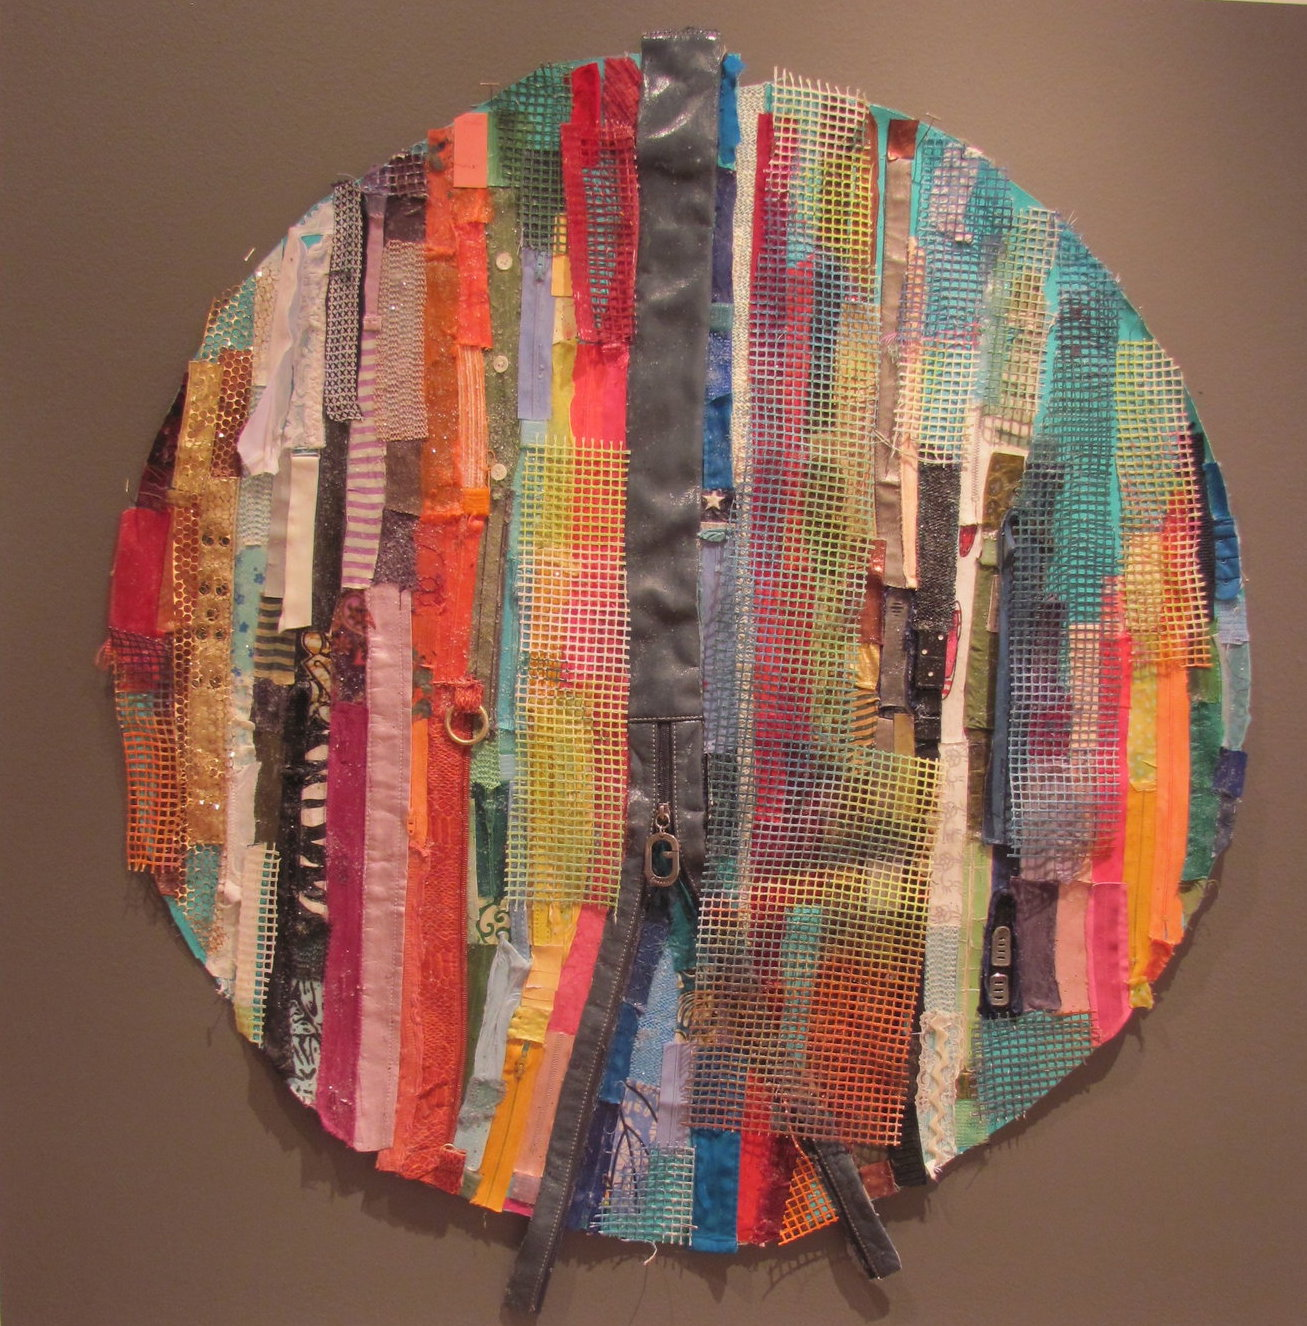 All That Is Constructed, Mixed Media on Canvas, 36 Diameter, Sold